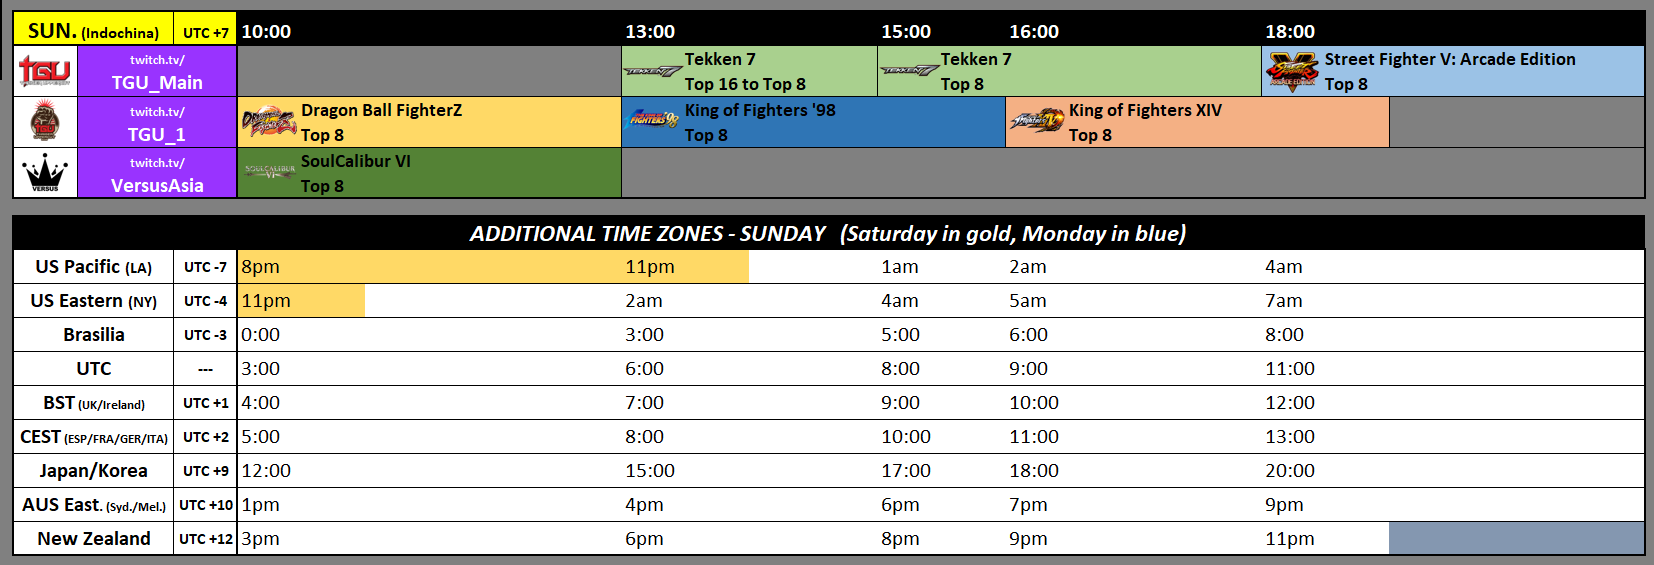 Thaiger Uppercut 2019 Event Schedule 2 out of 2 image gallery